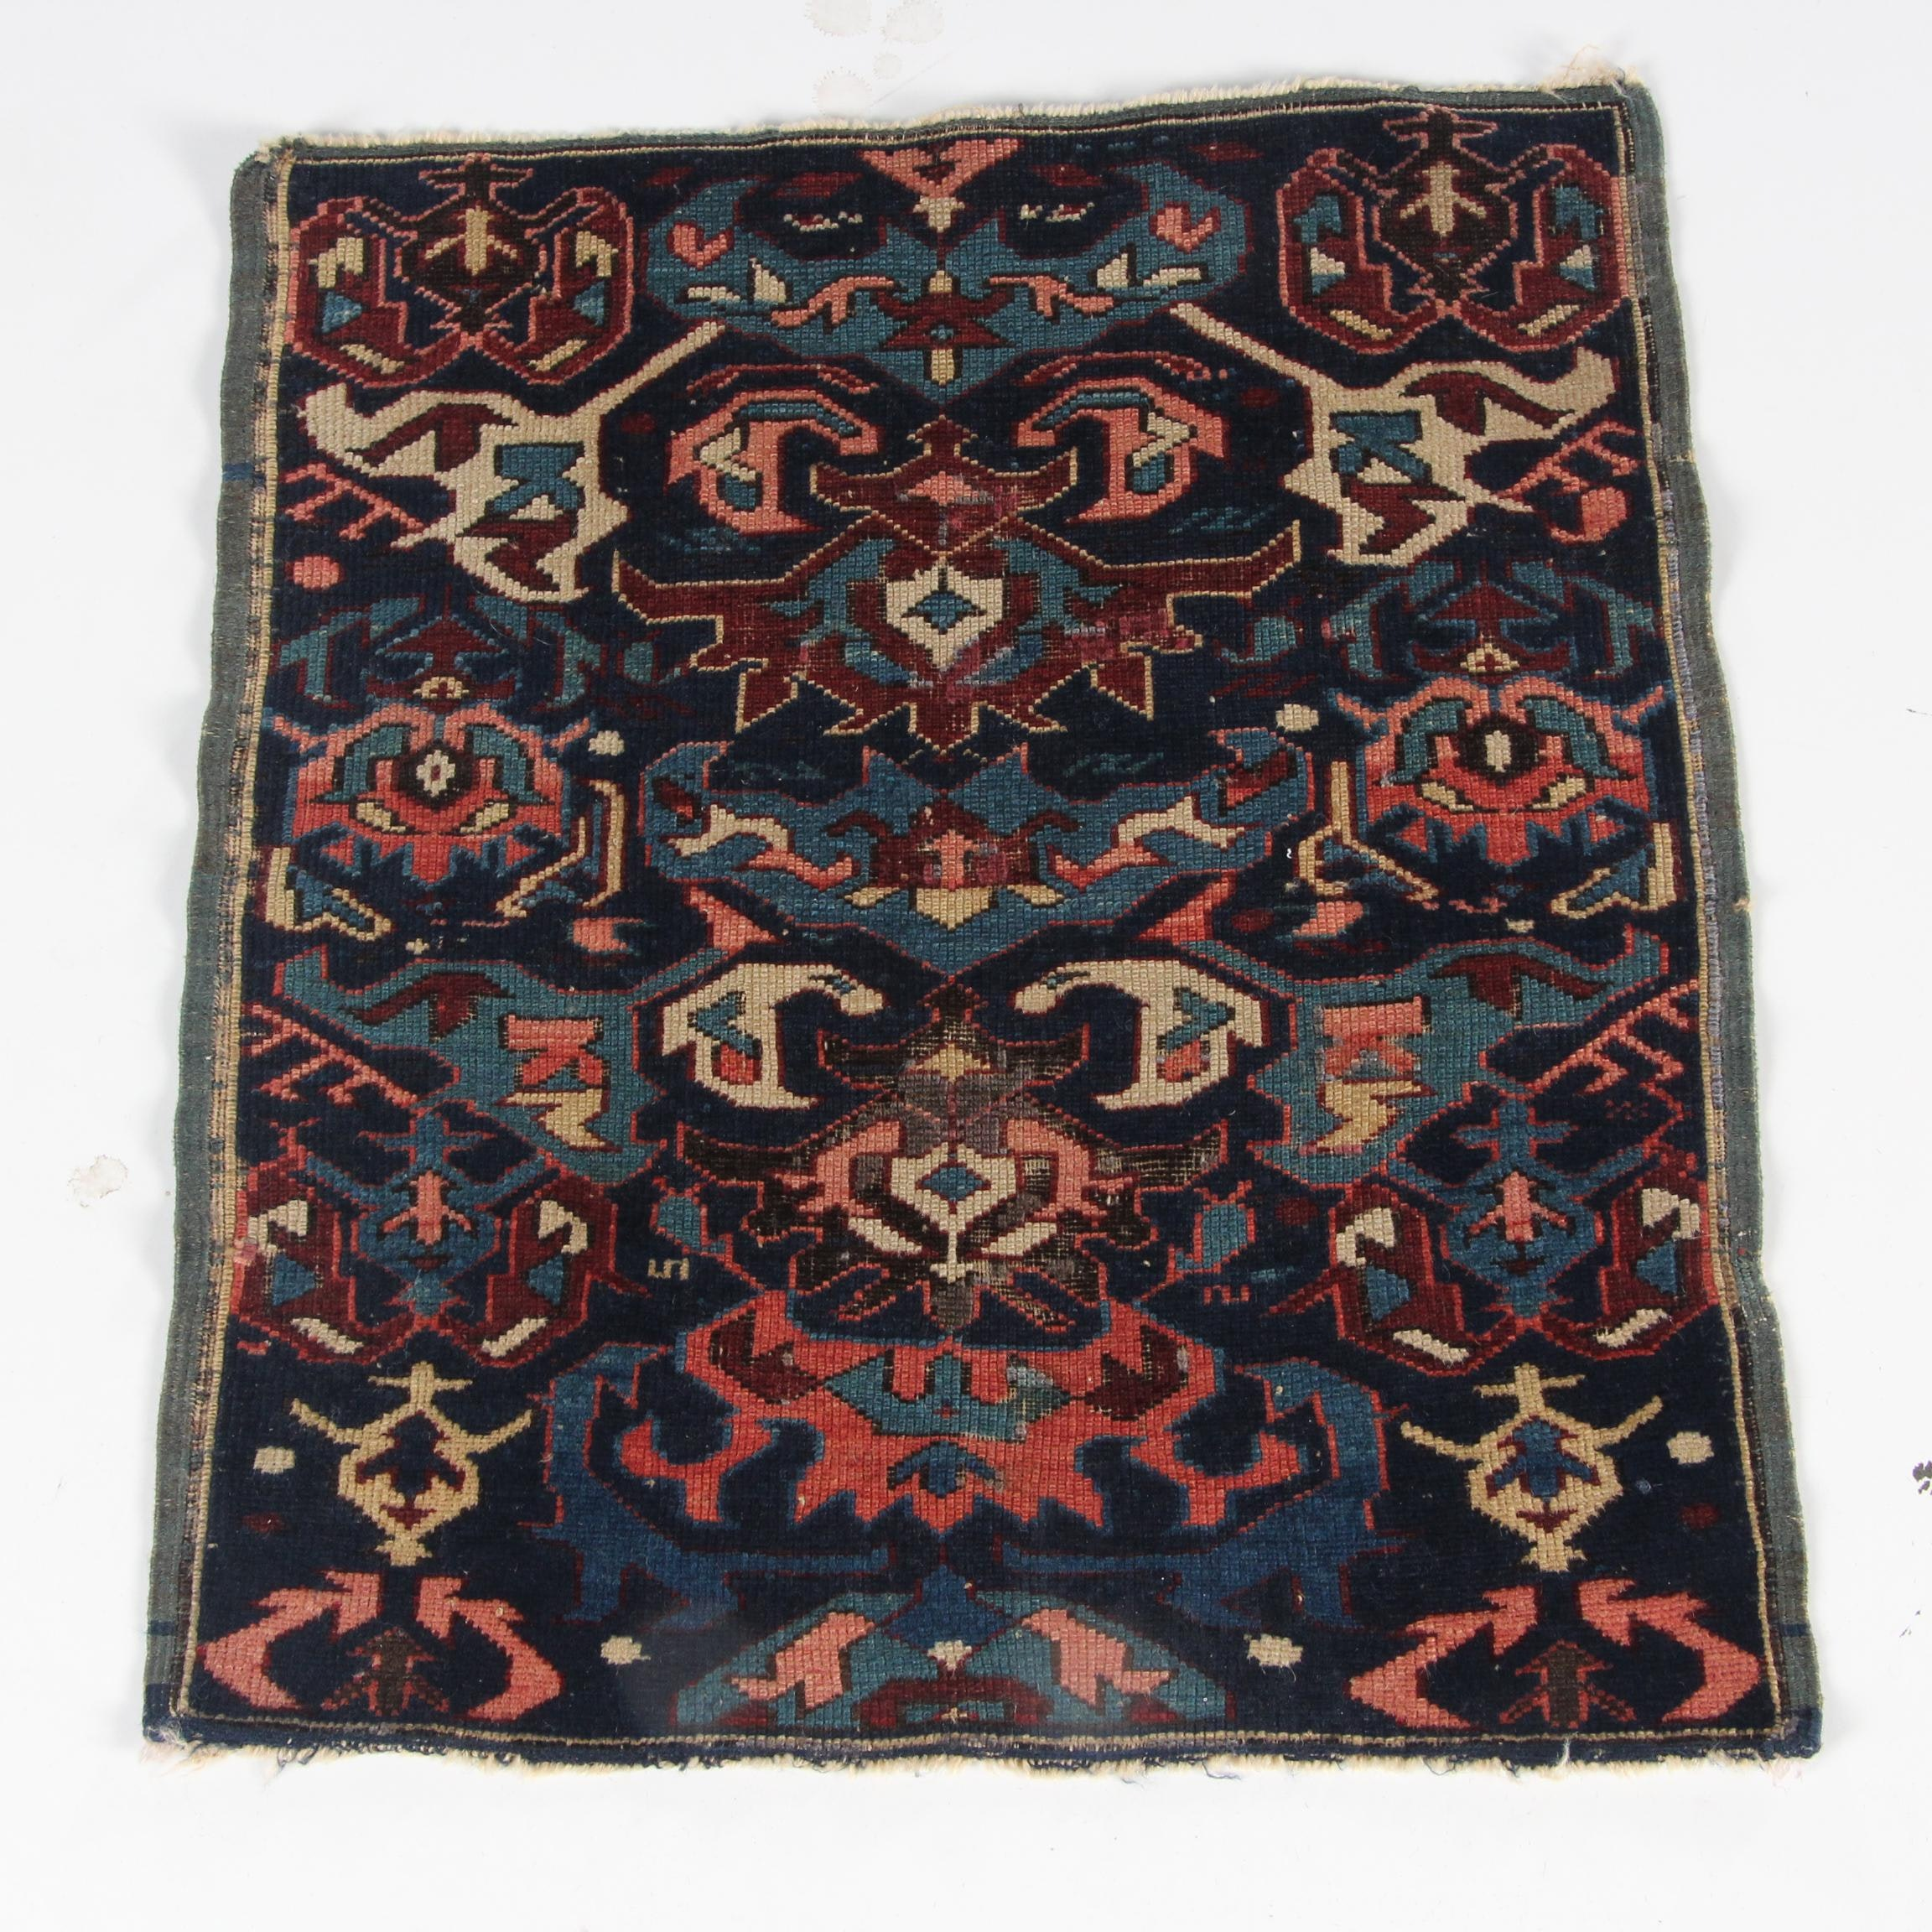 Antique Hand-Knotted Kuba Wool Accent Rug